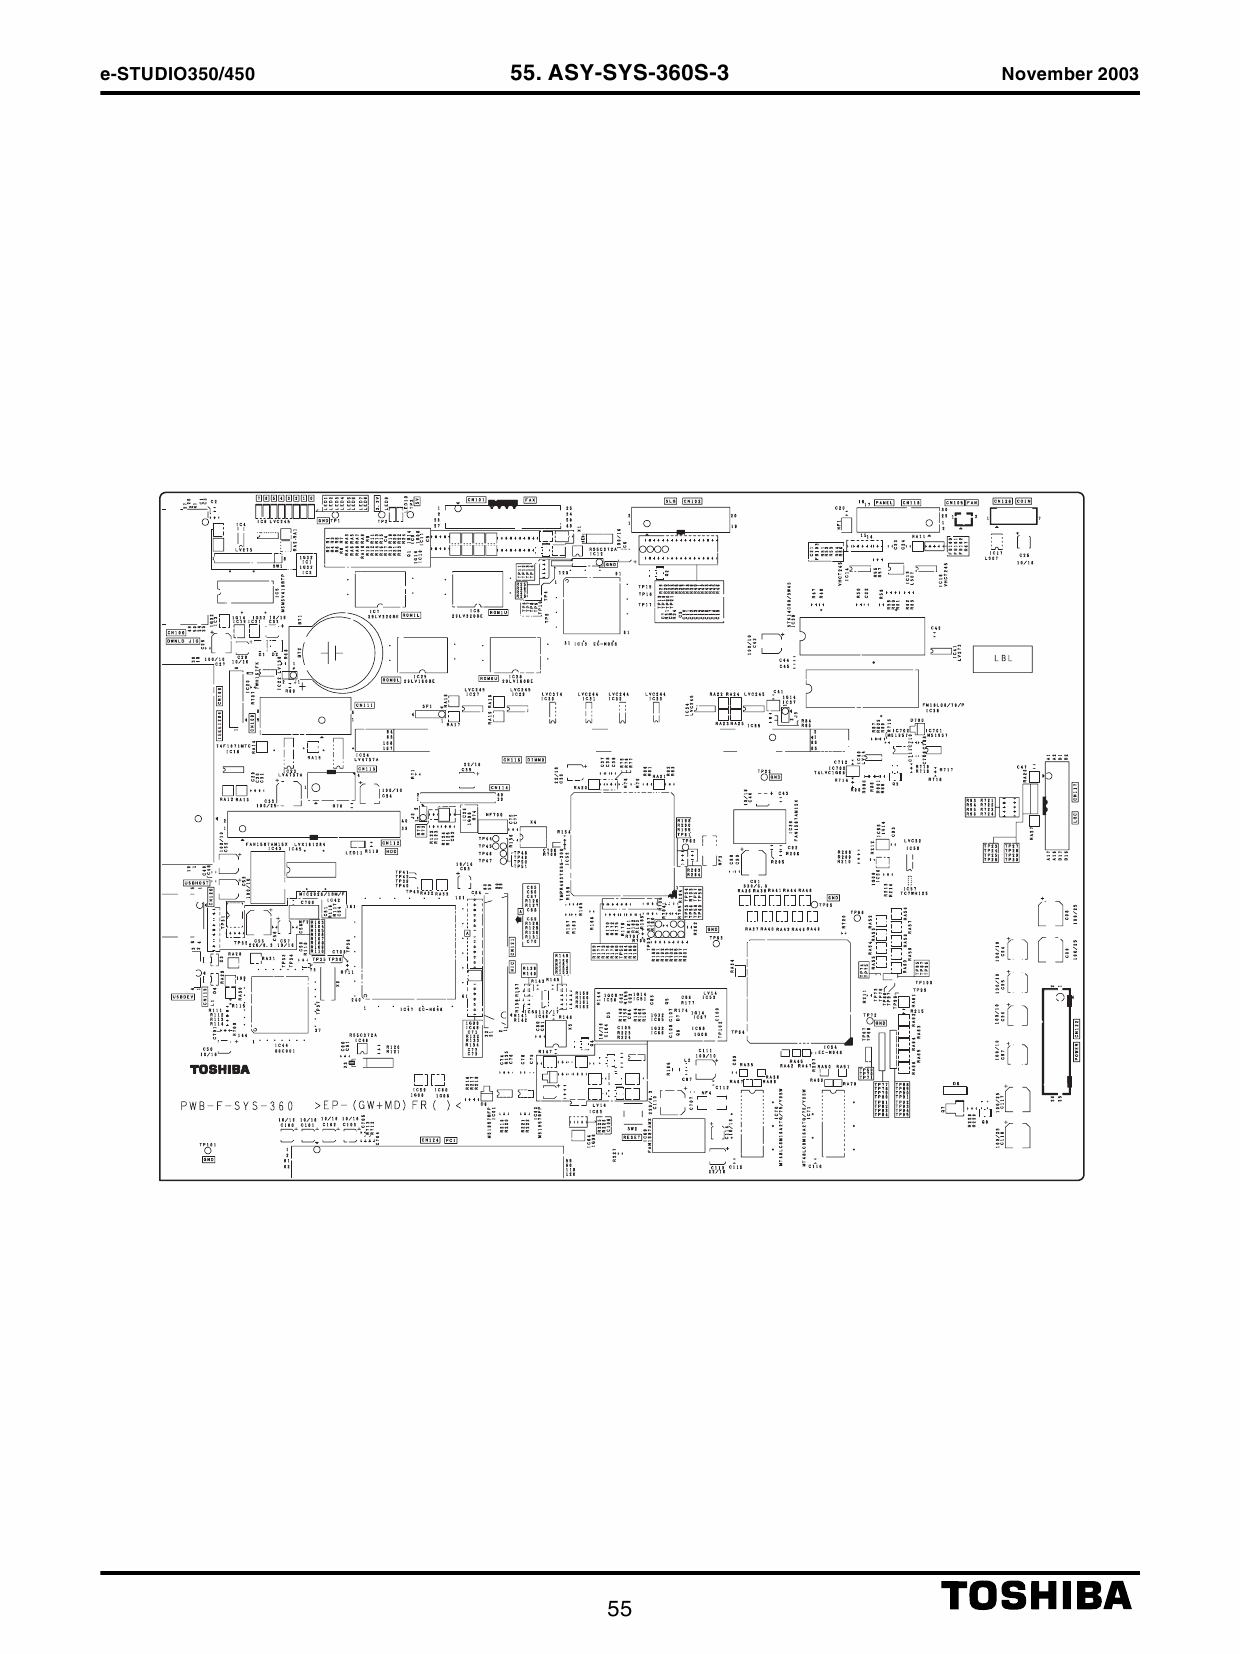 TOSHIBA e-STUDIO 350 450 Parts List Manual